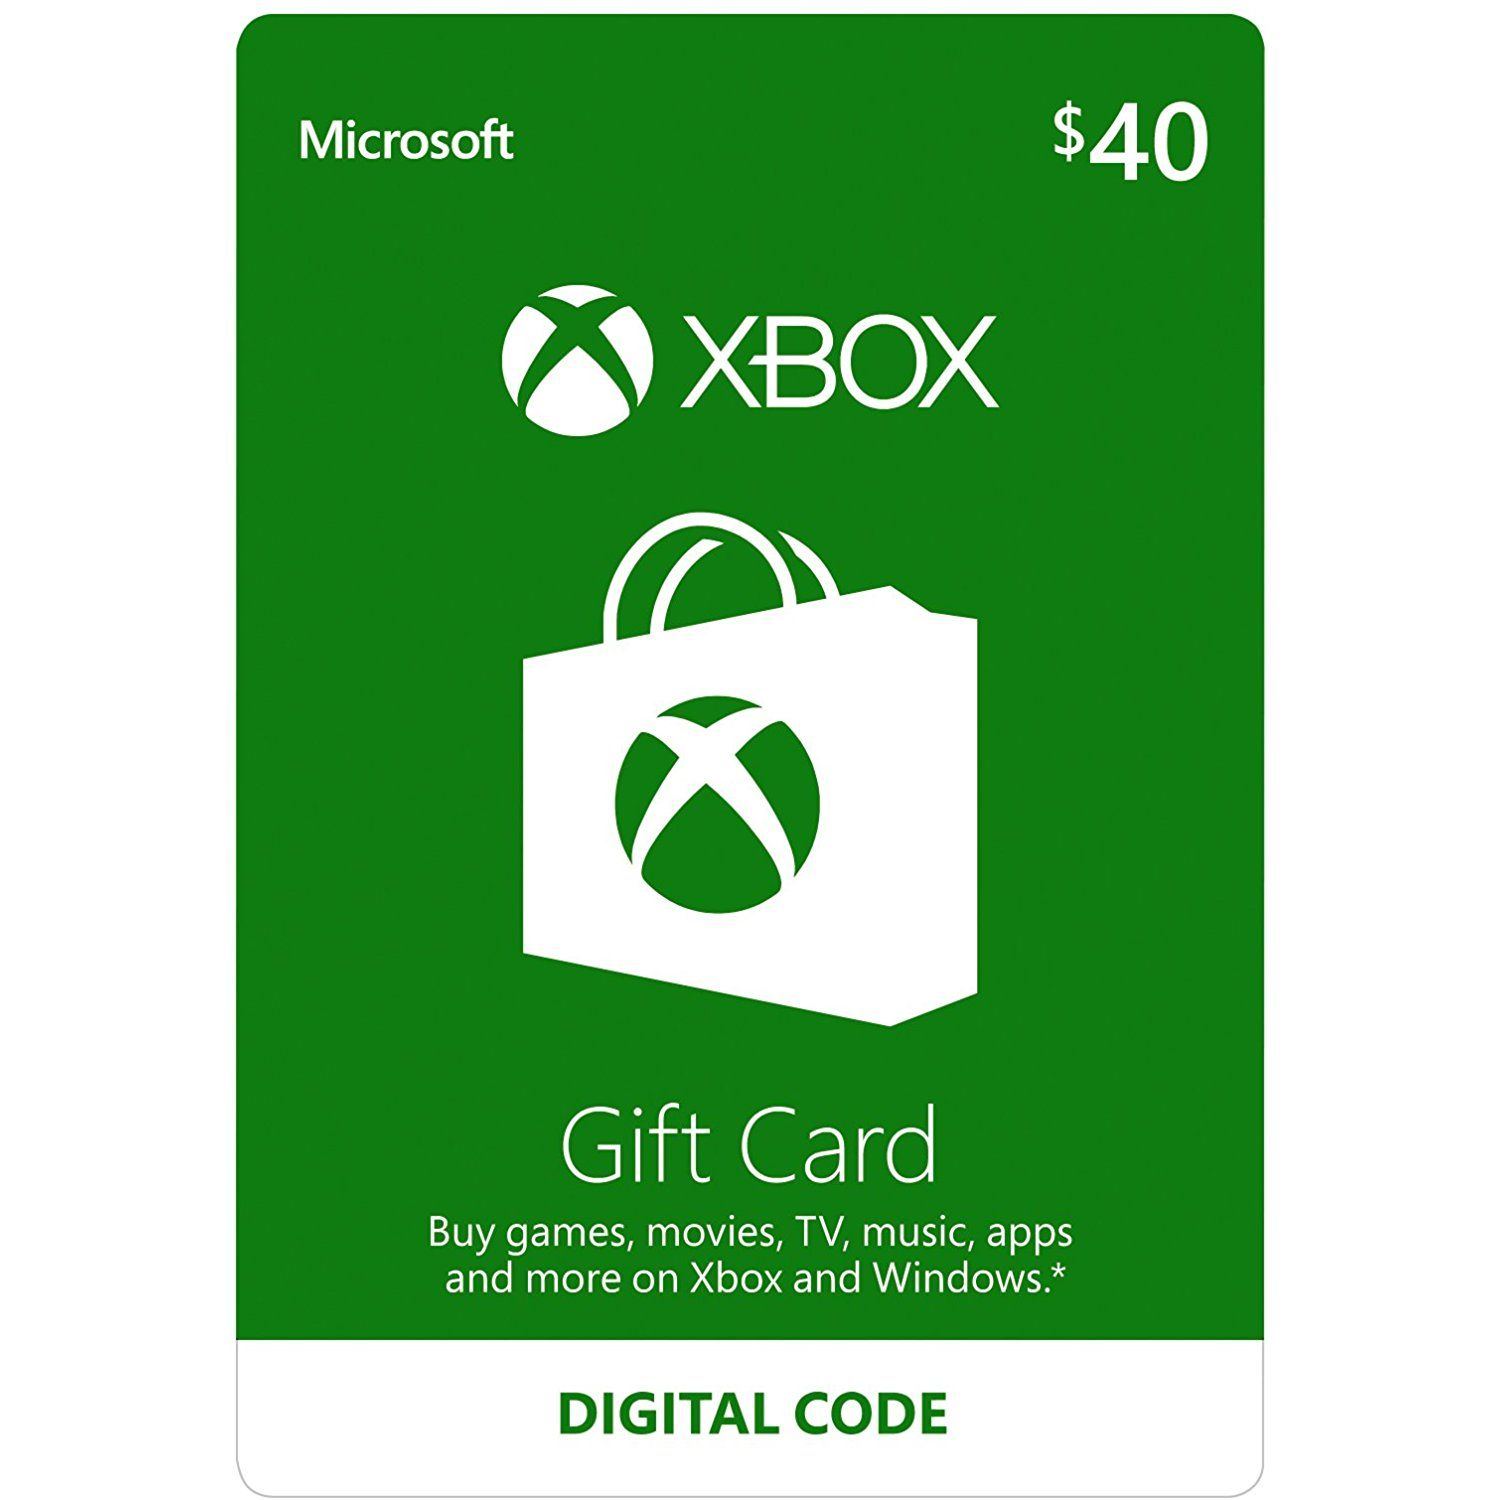 [Digital Code] * You Can Get